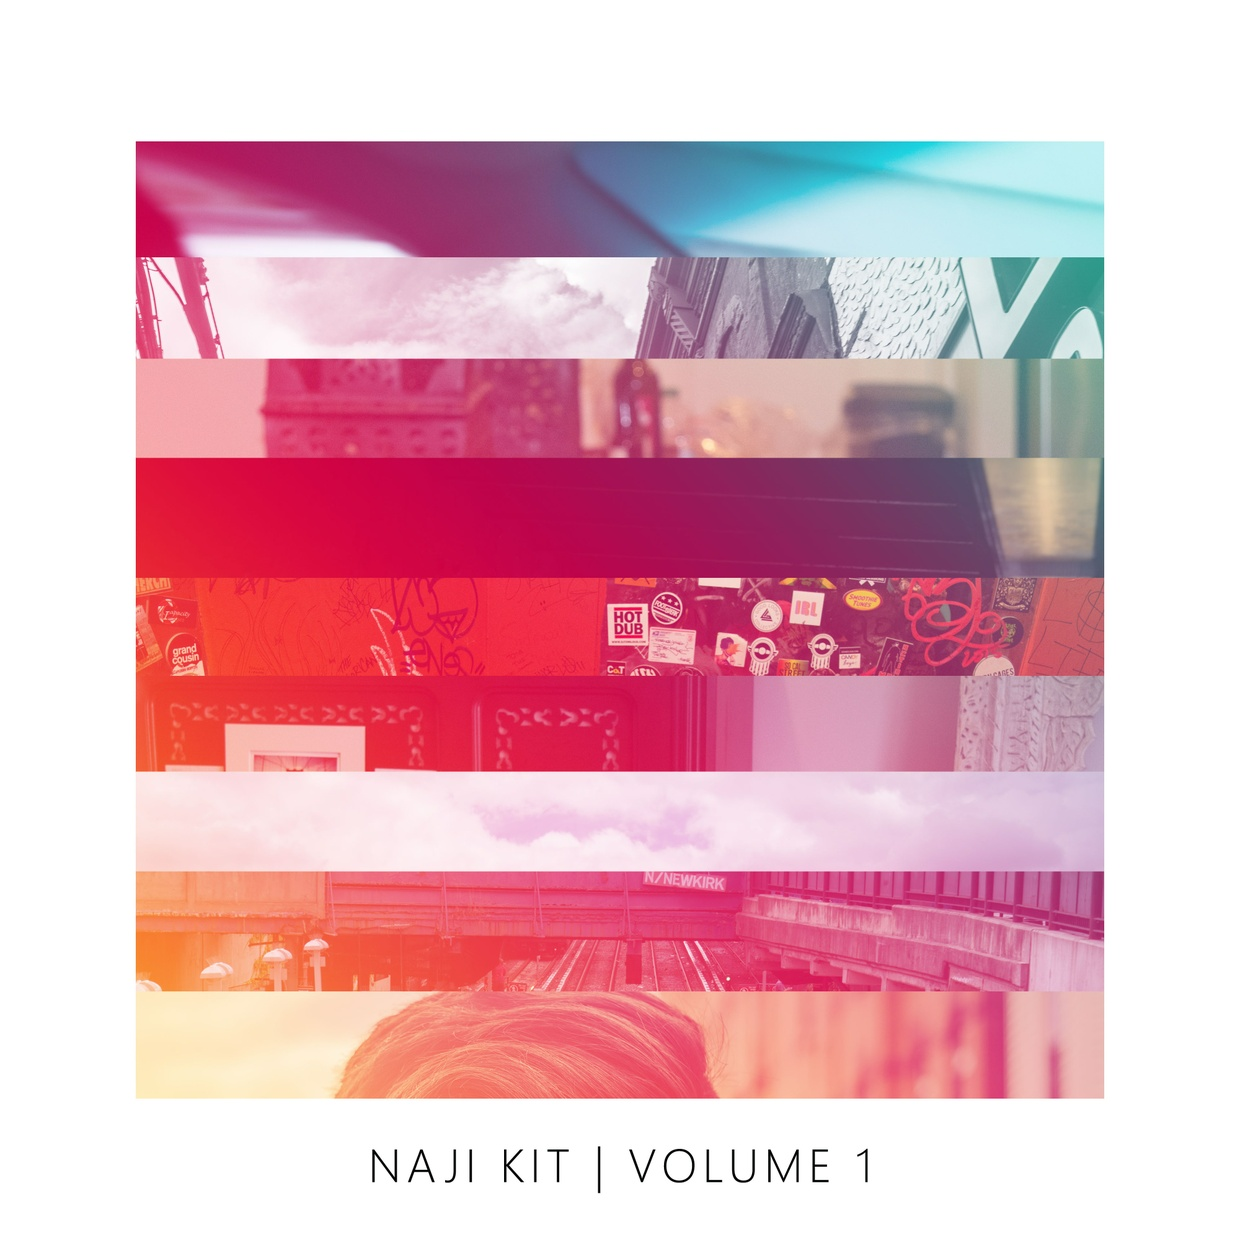 Naji Kit | Volume 1